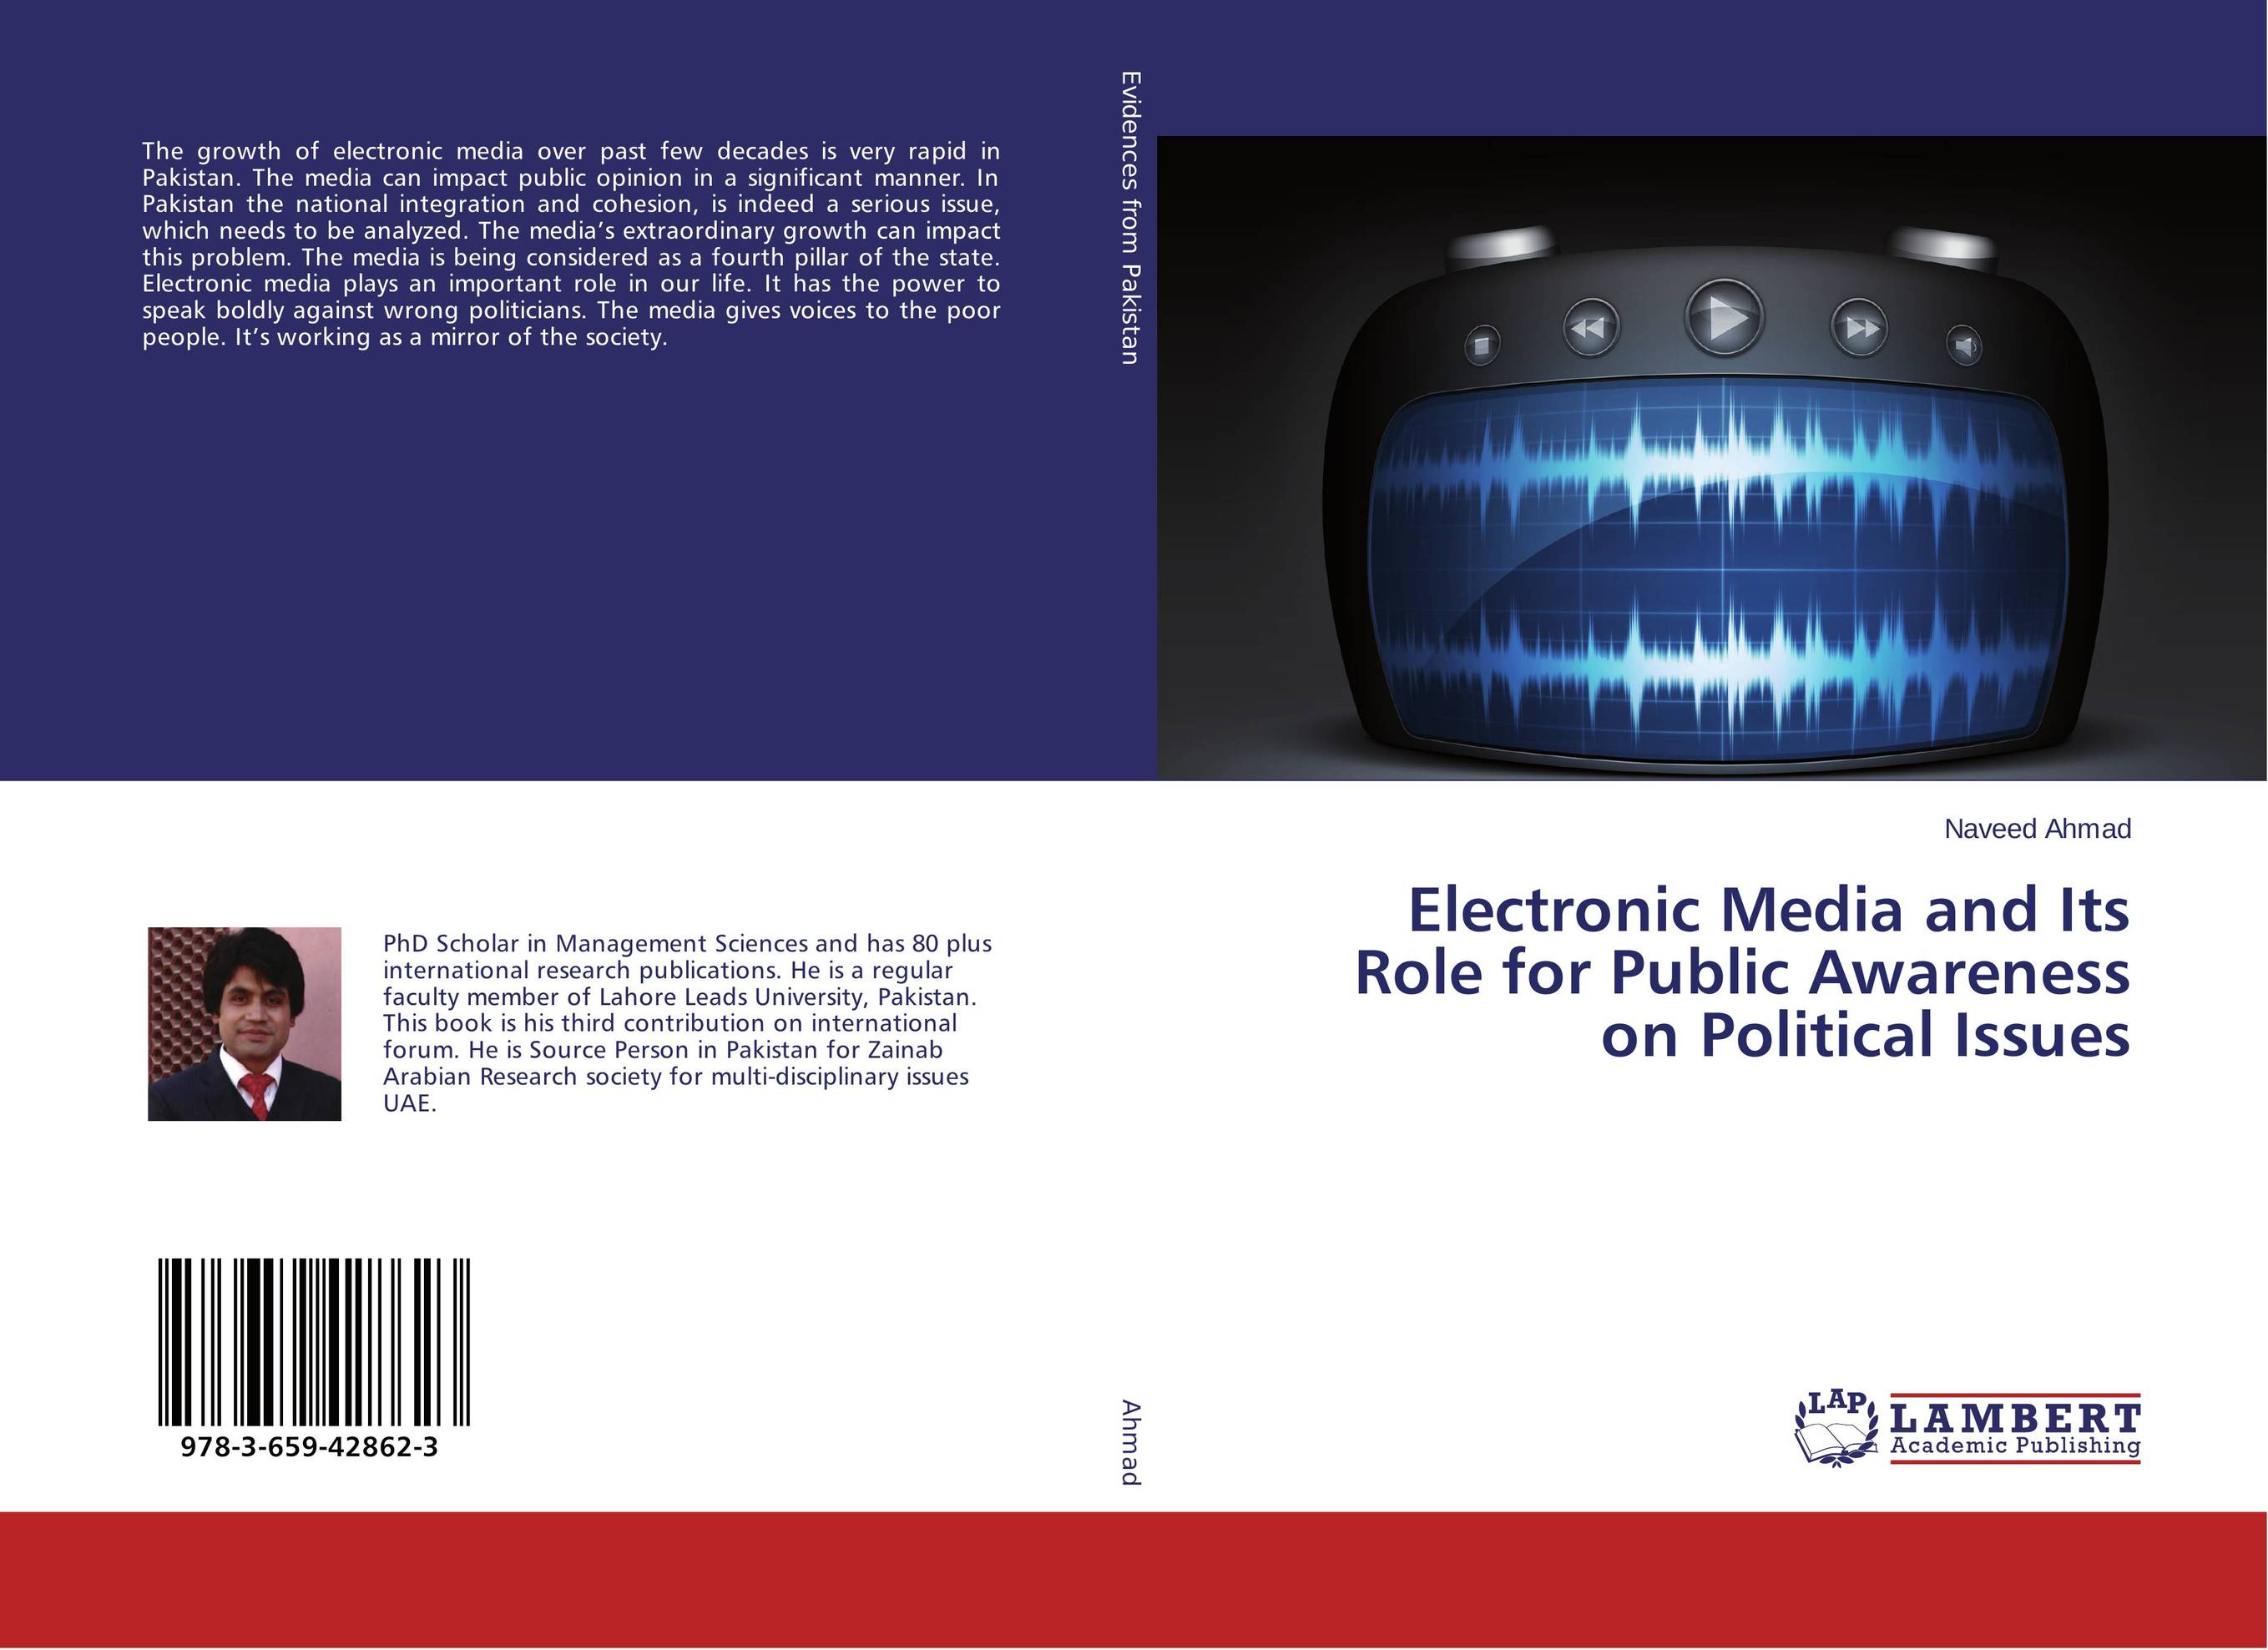 Electronic Media and Its Role for Public Awareness on Political Issues doug young the party line how the media dictates public opinion in modern china